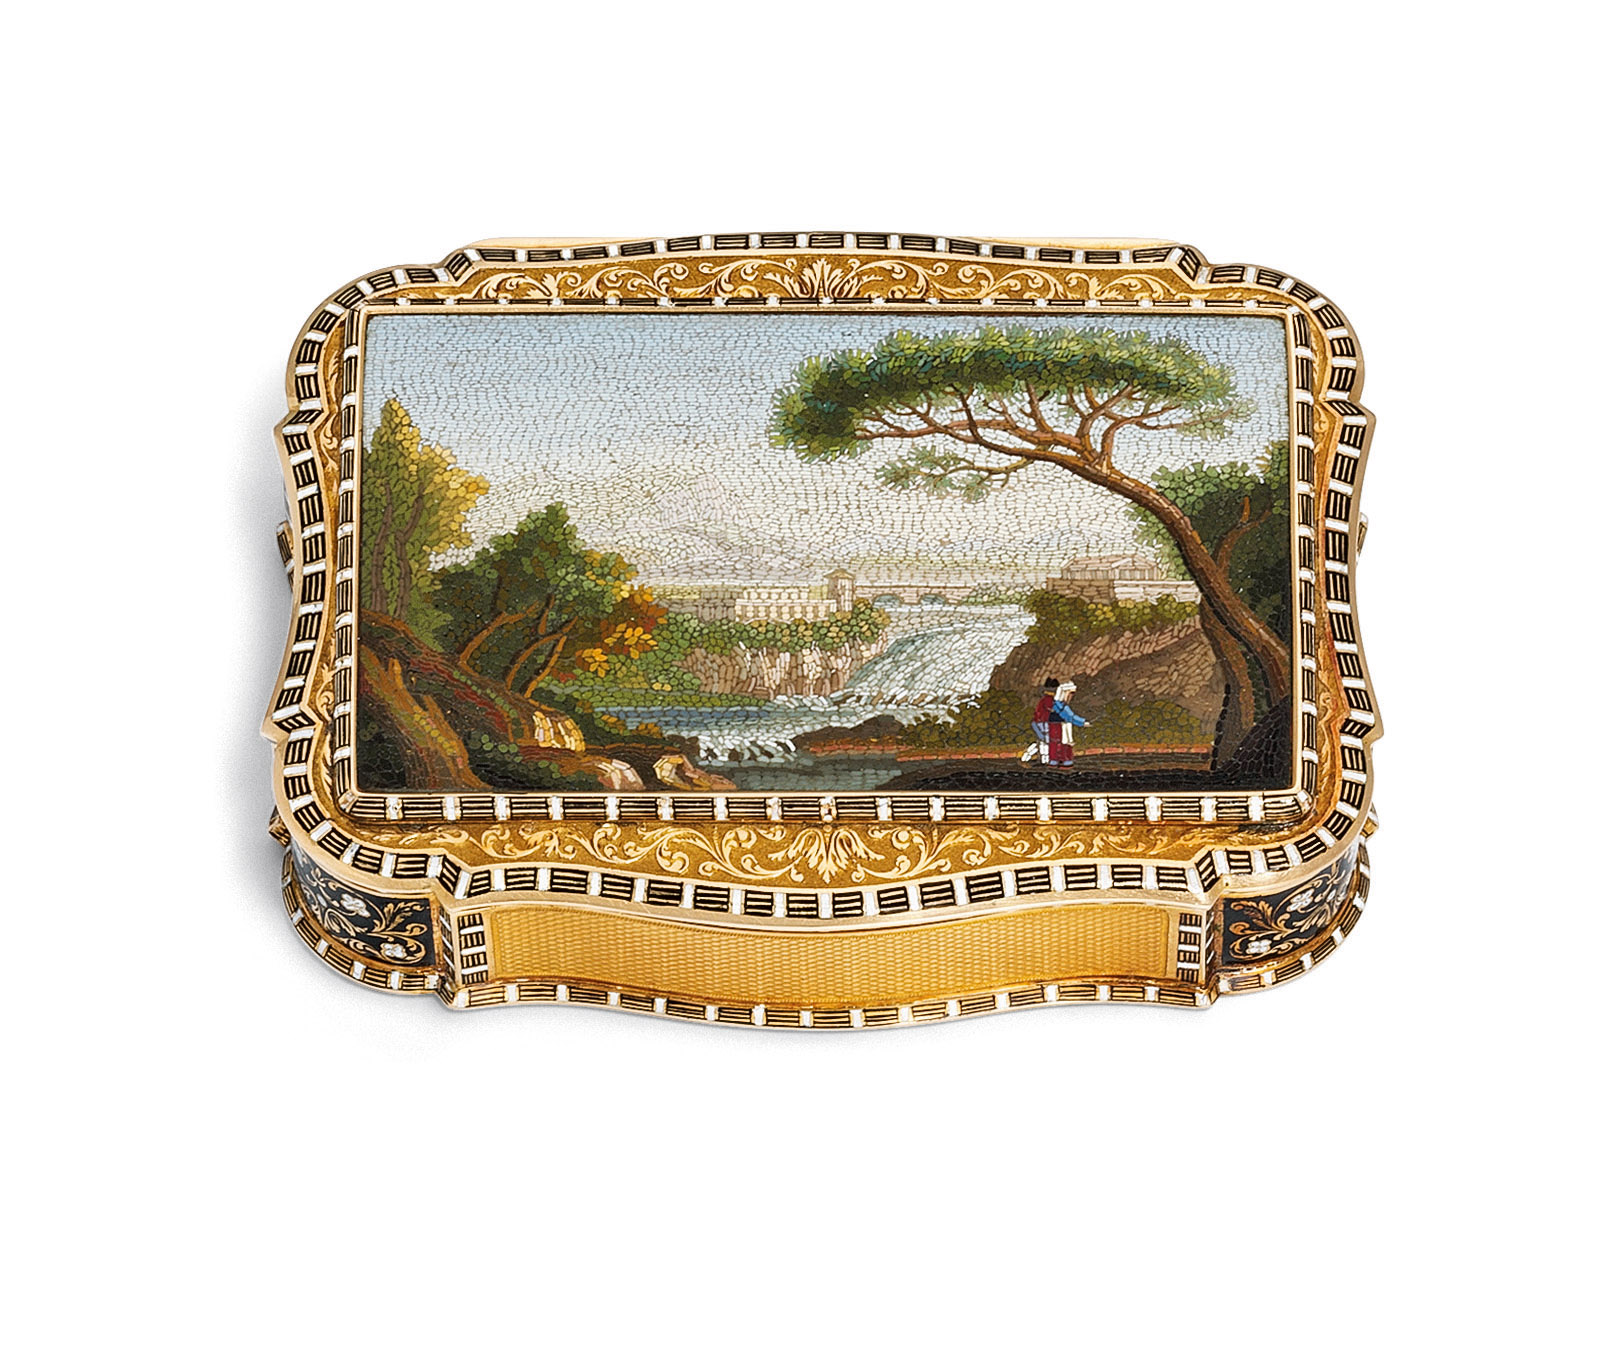 A FINE SWISS ENAMELLED GOLD SNUFF-BOX SET WITH A ROMAN MICROMOSAIC PLAQUE